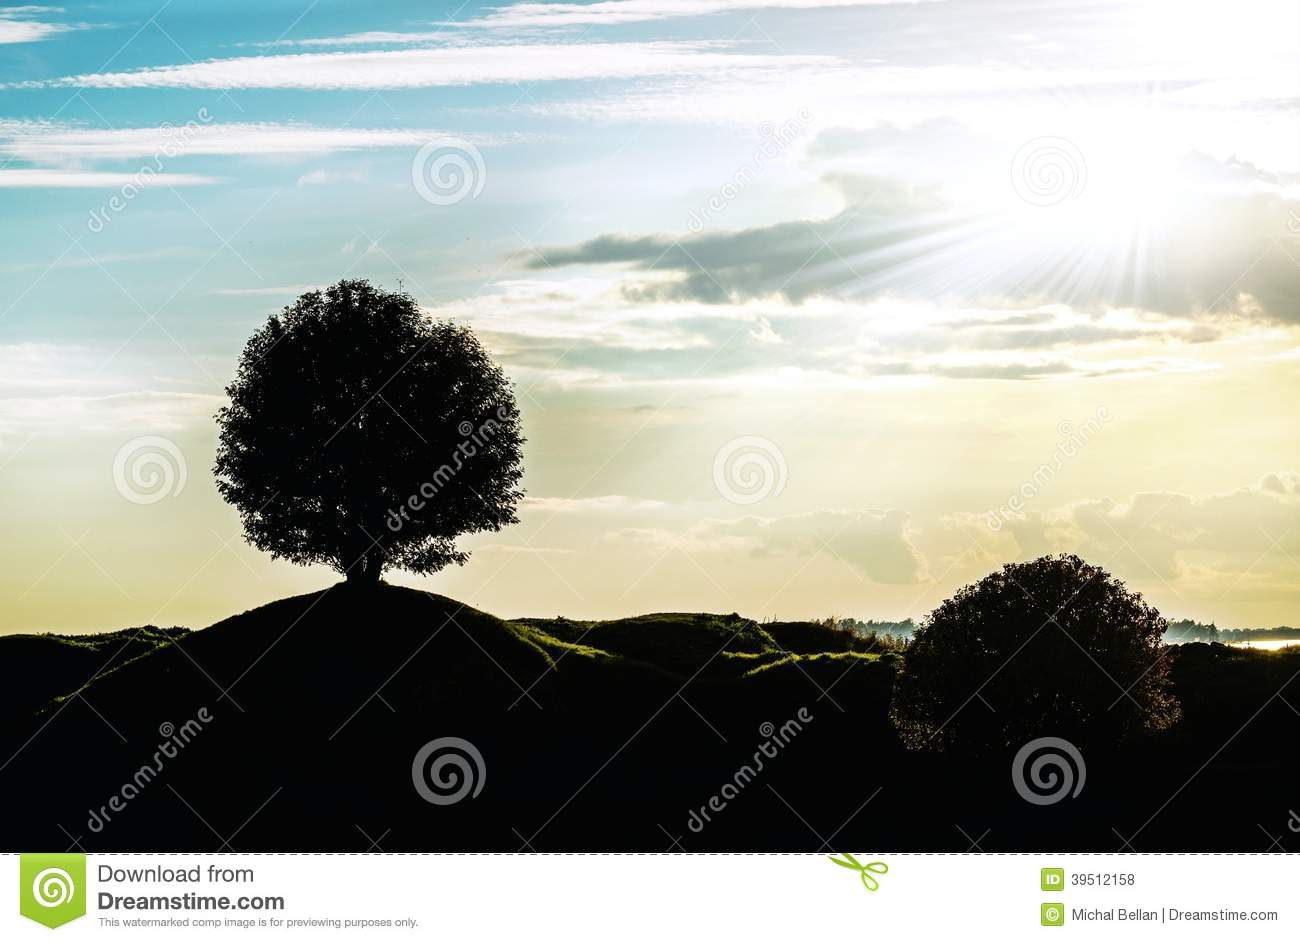 Graphic landscape silhouette with a signal tree